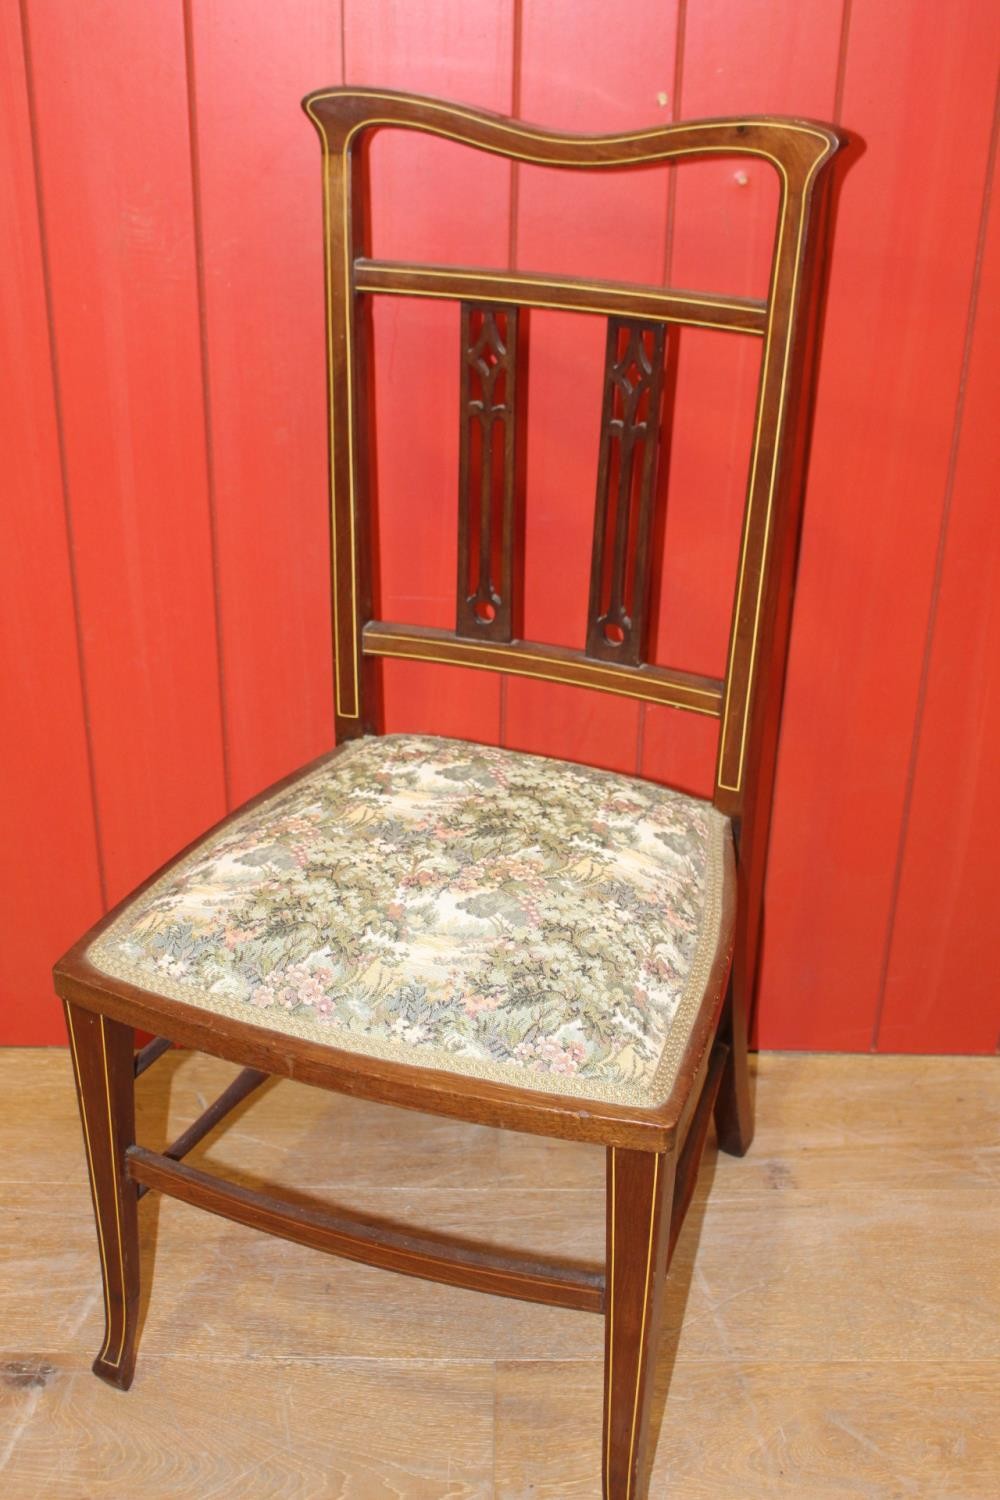 Early 20th C. inlaid oak side chair